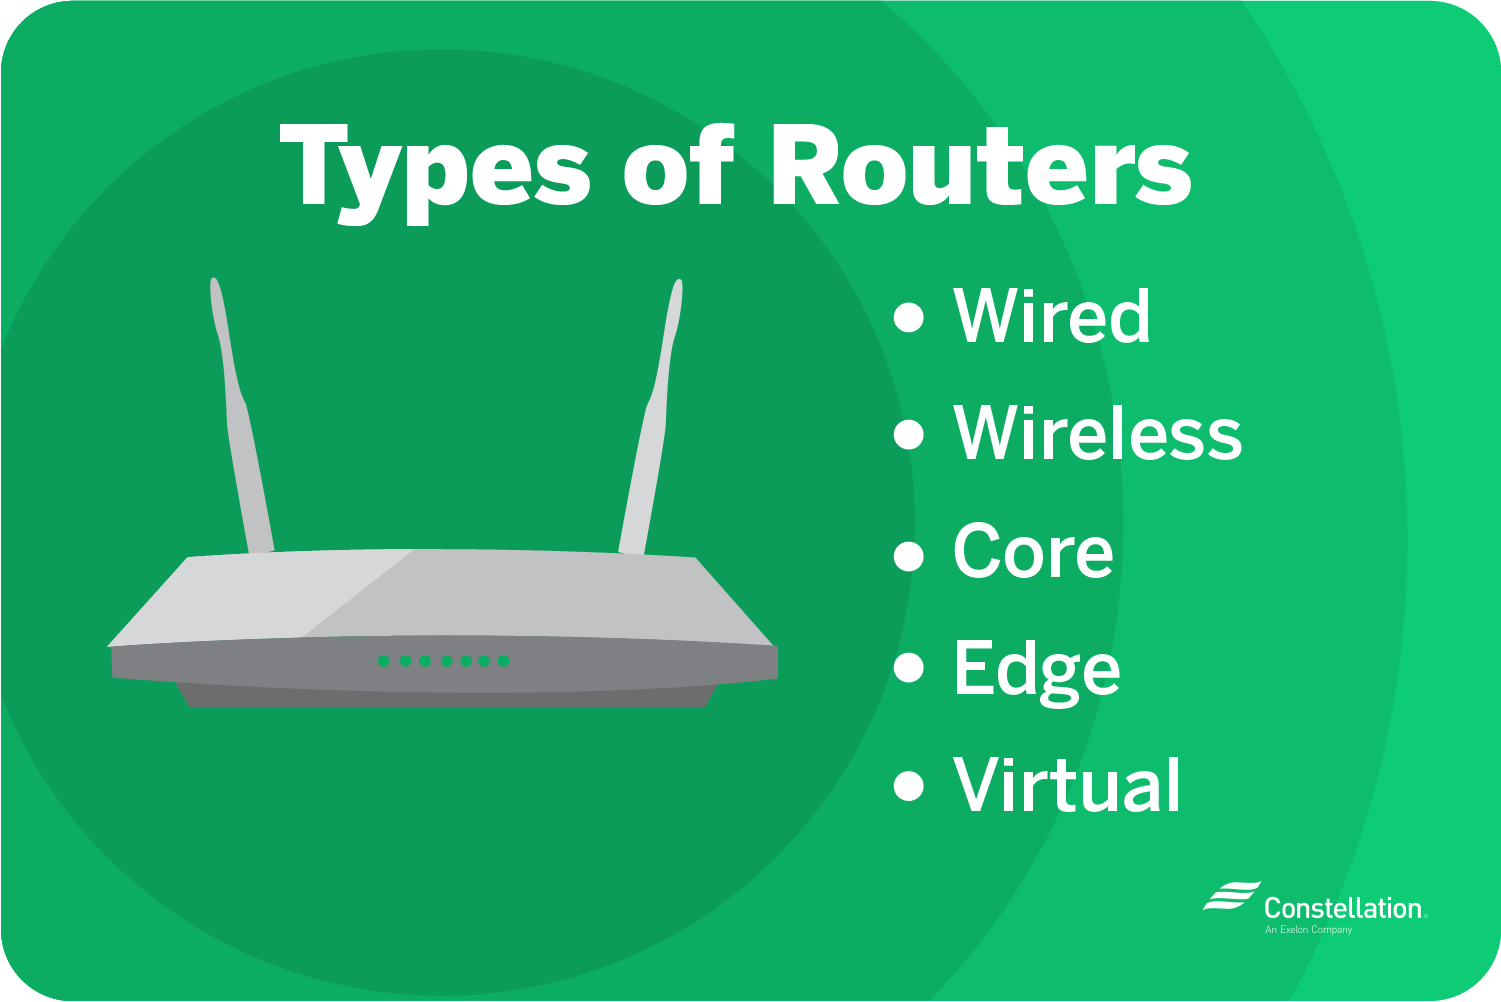 There are wired, wireless, core, edge, and virtual types of routers